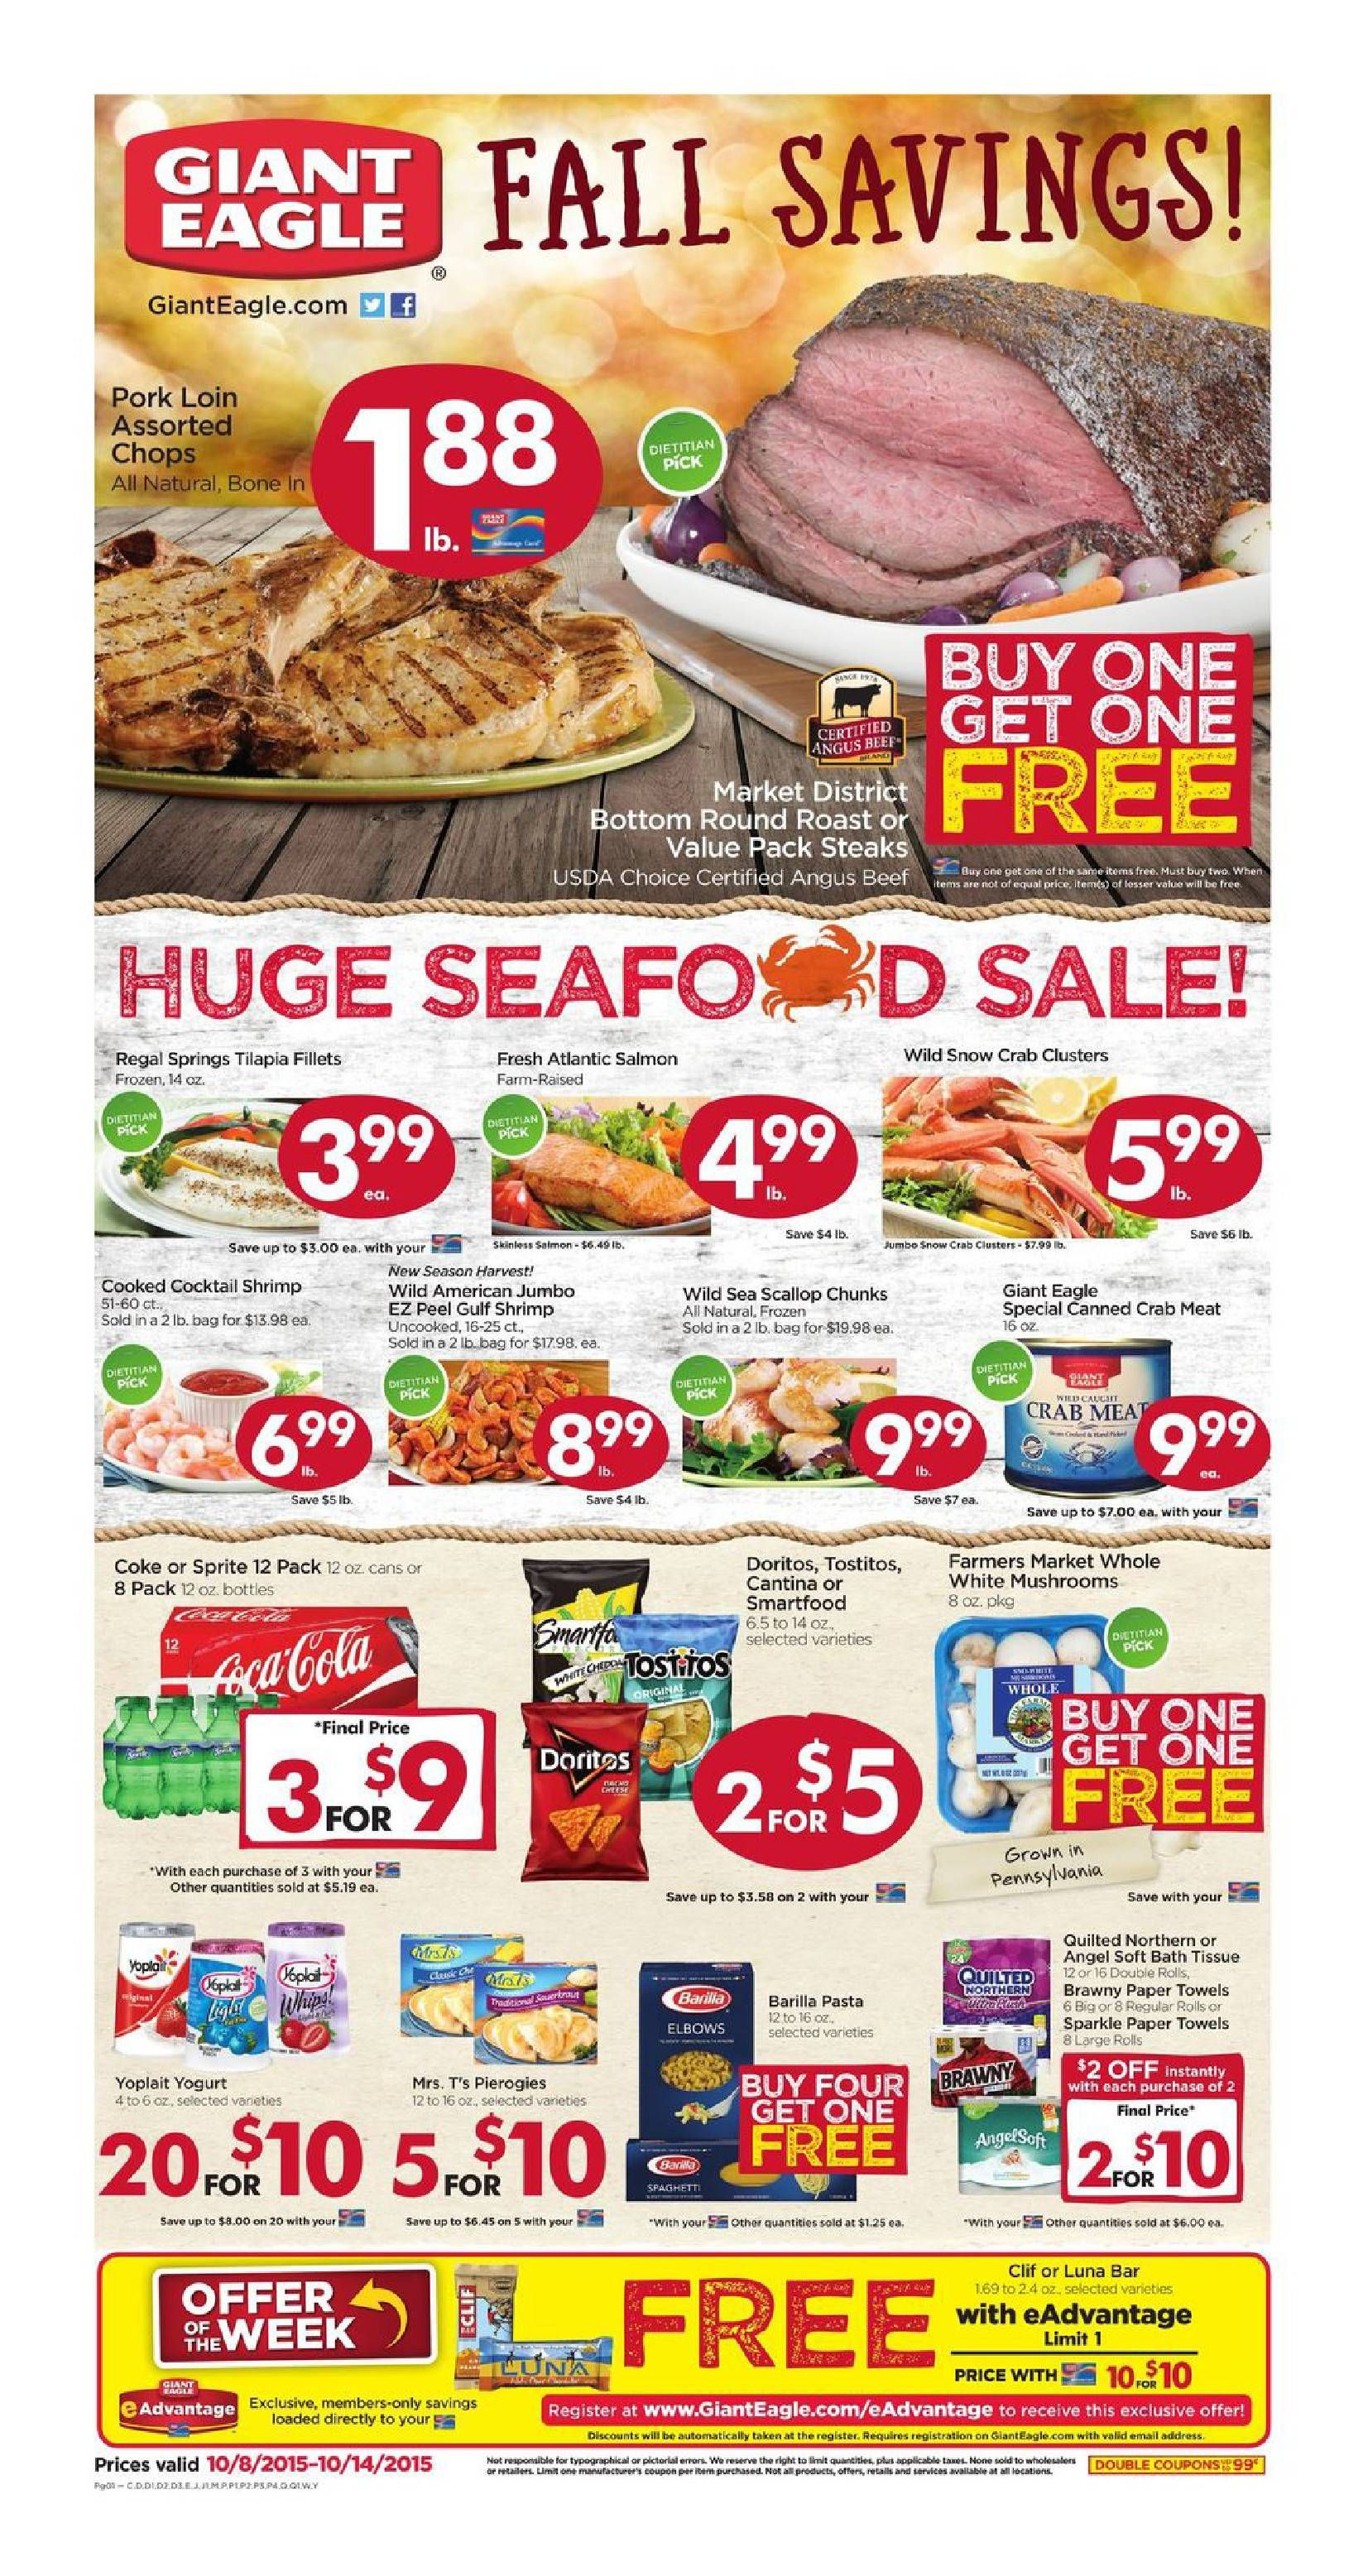 Giant eagle weekly ad october 8 14 2015 weekly ads